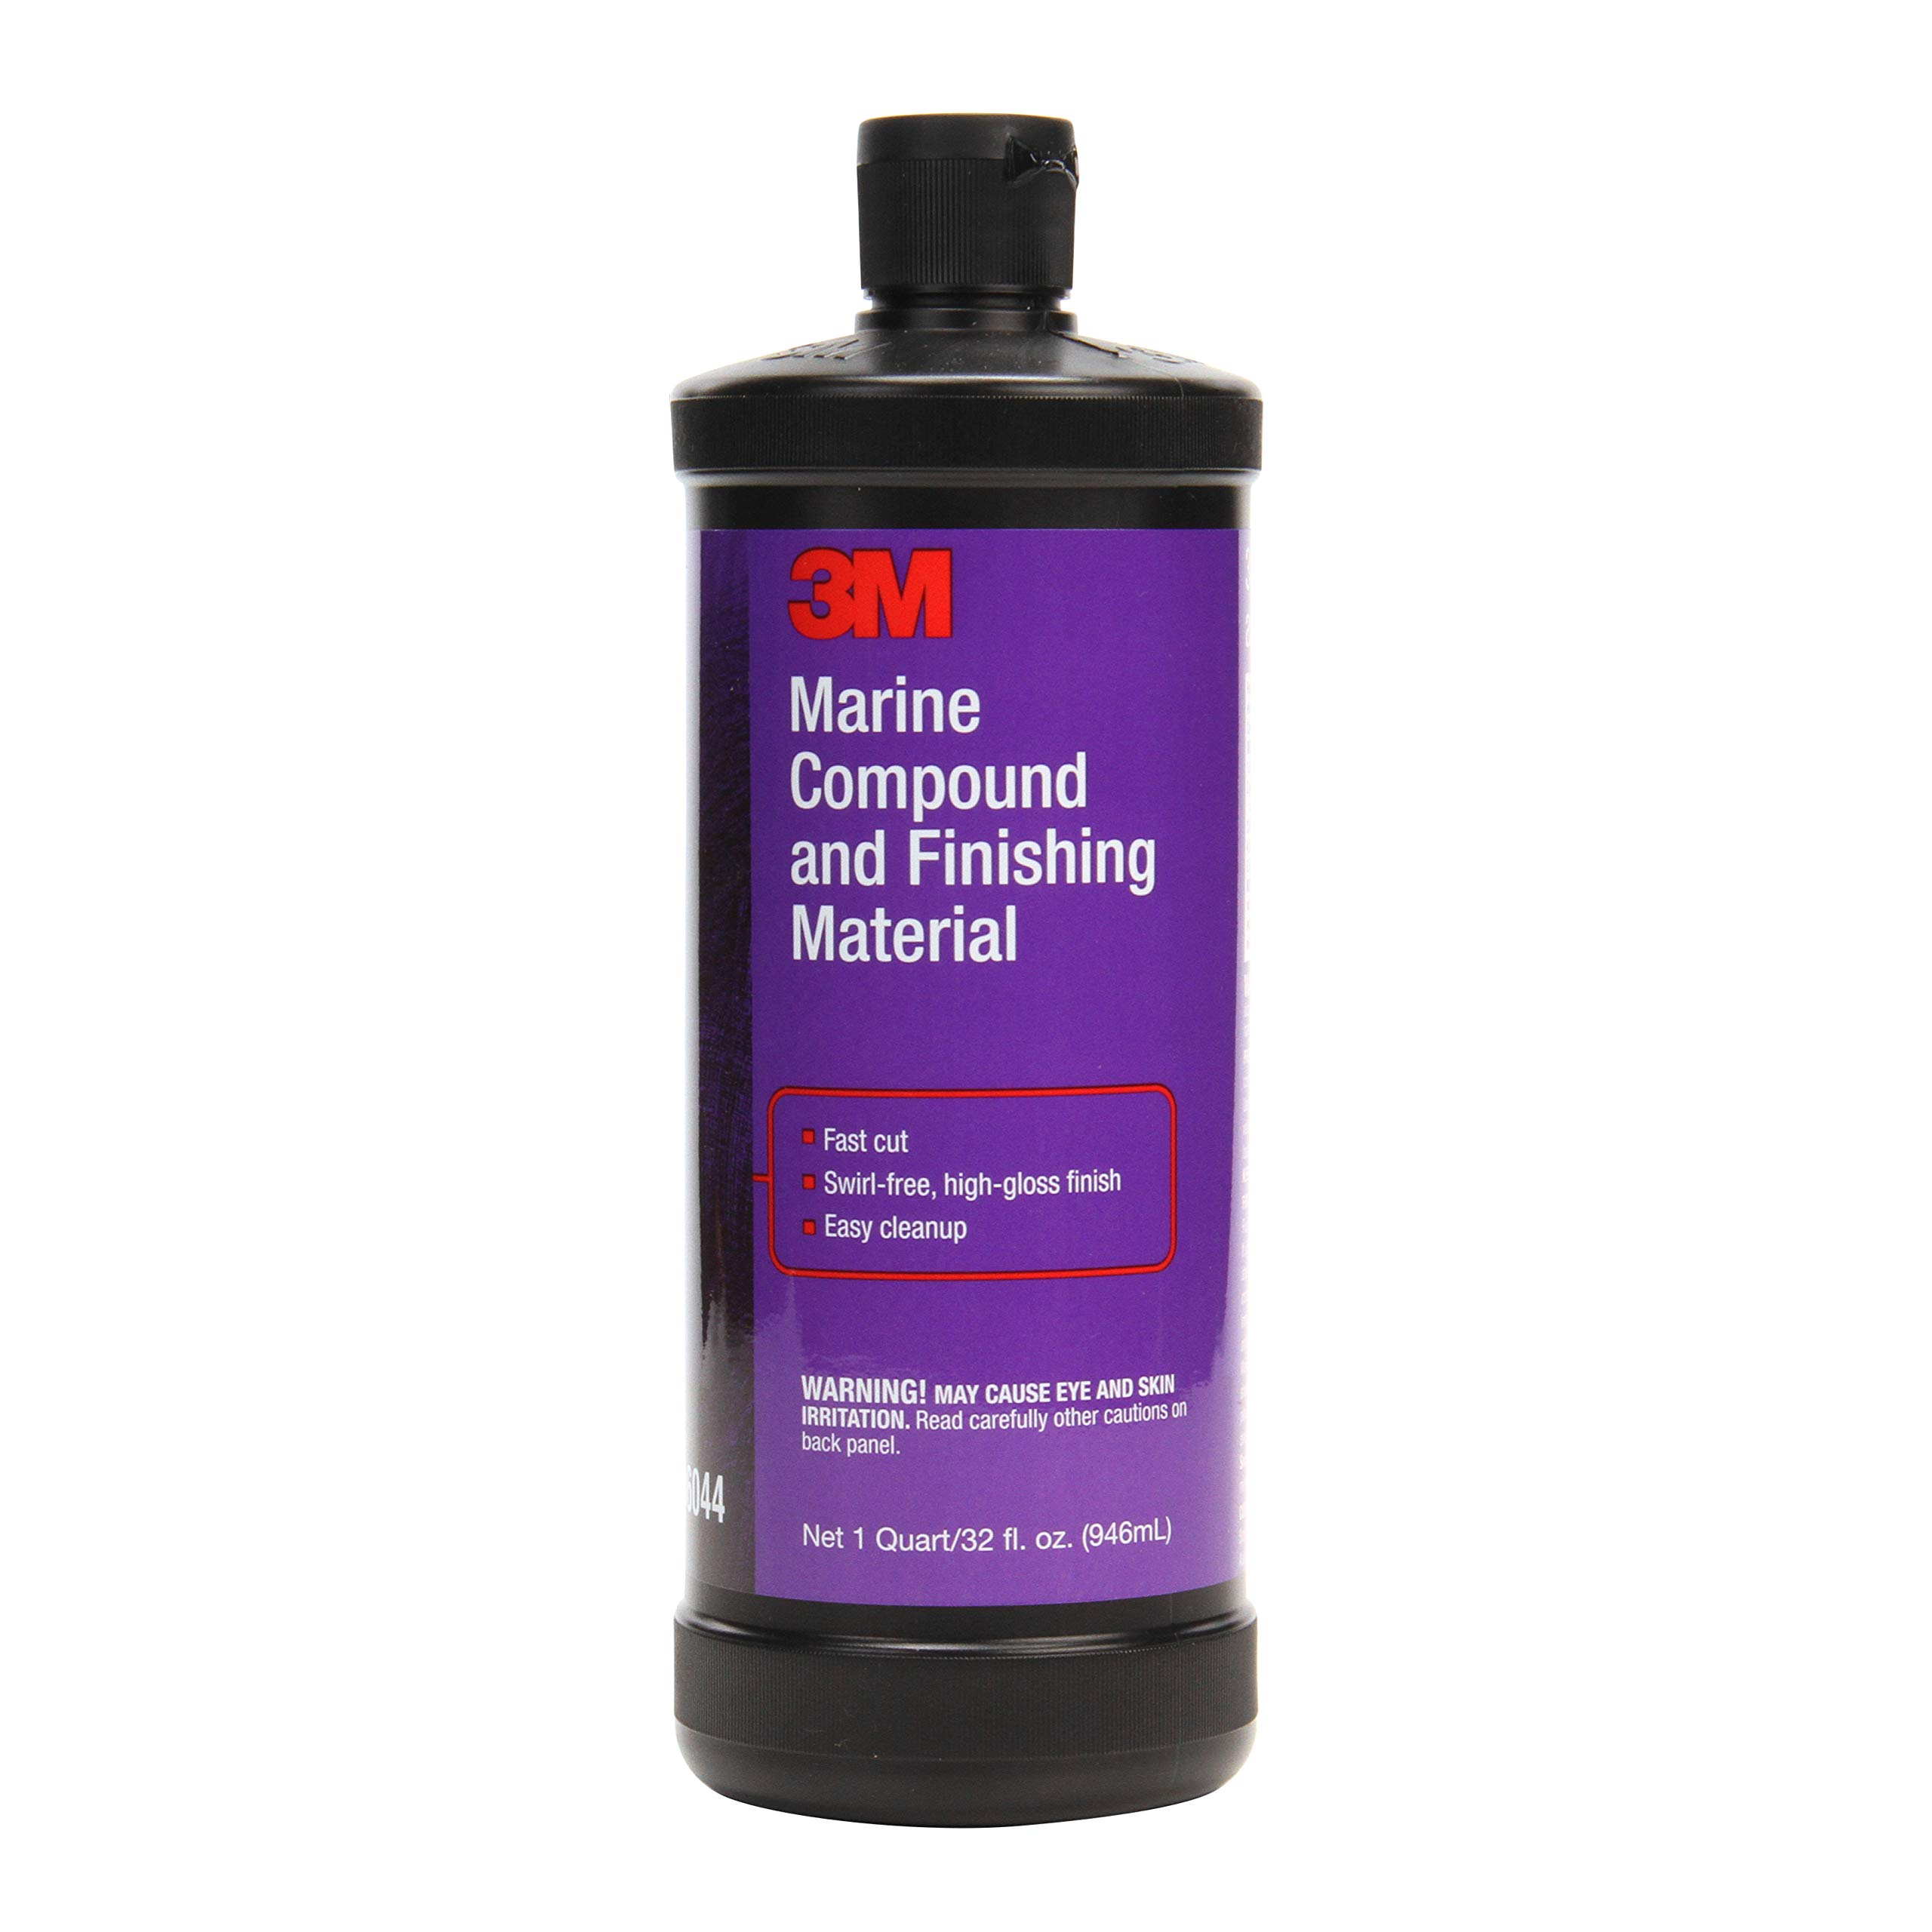 3M Marine Compound and Finishing Material (06044) - For Boats and RVs - 32 Ounces by 3M